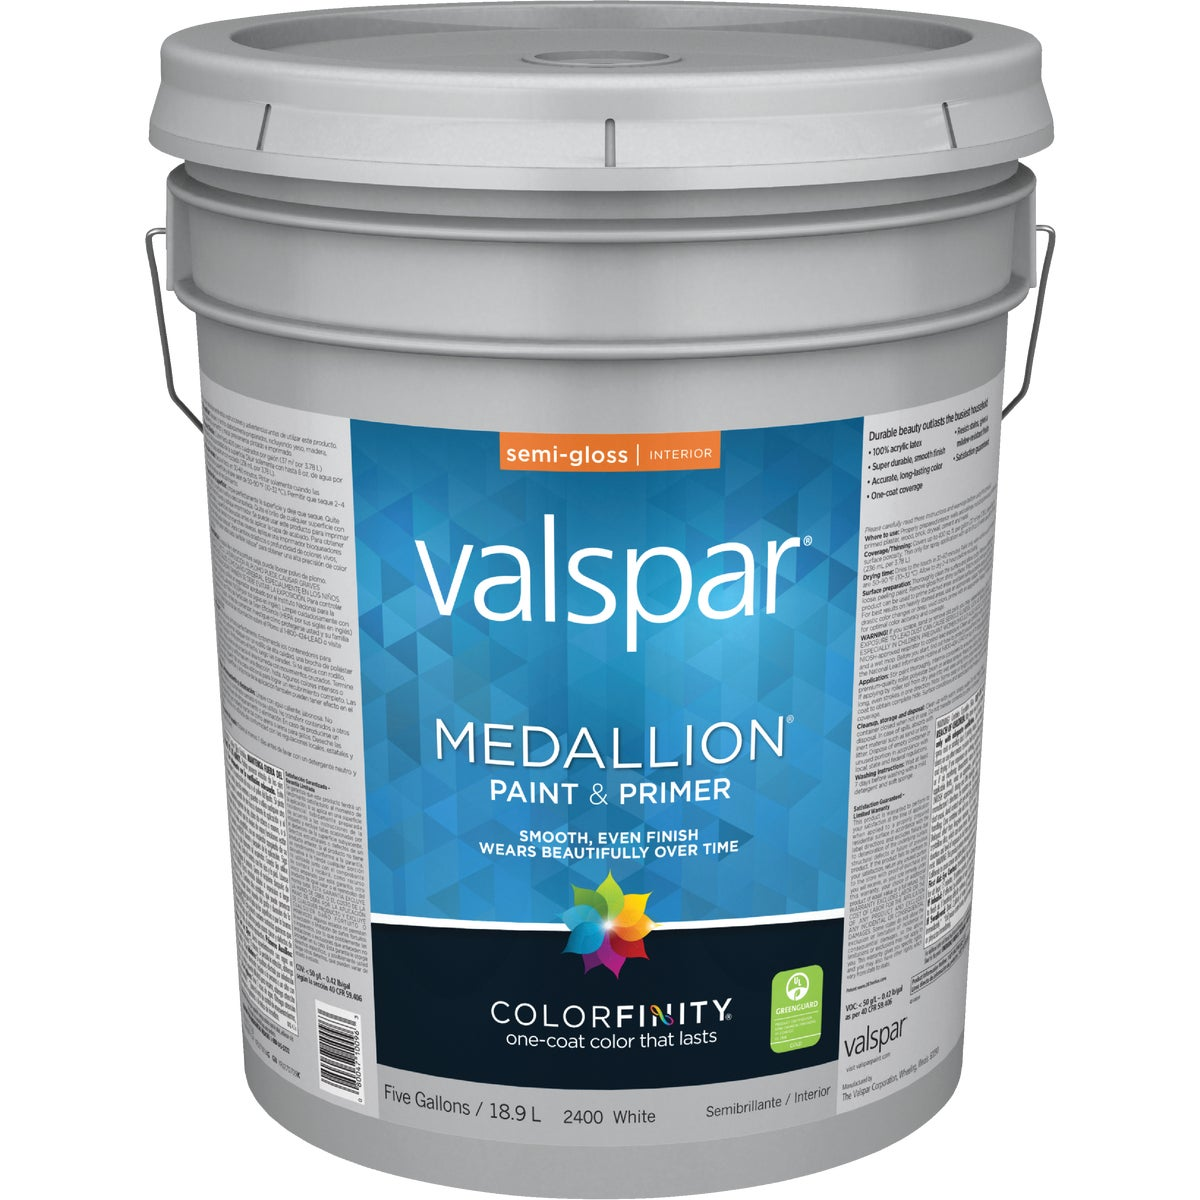 INT S/G WHITE PAINT - 027.0002400.008 by Valspar Corp